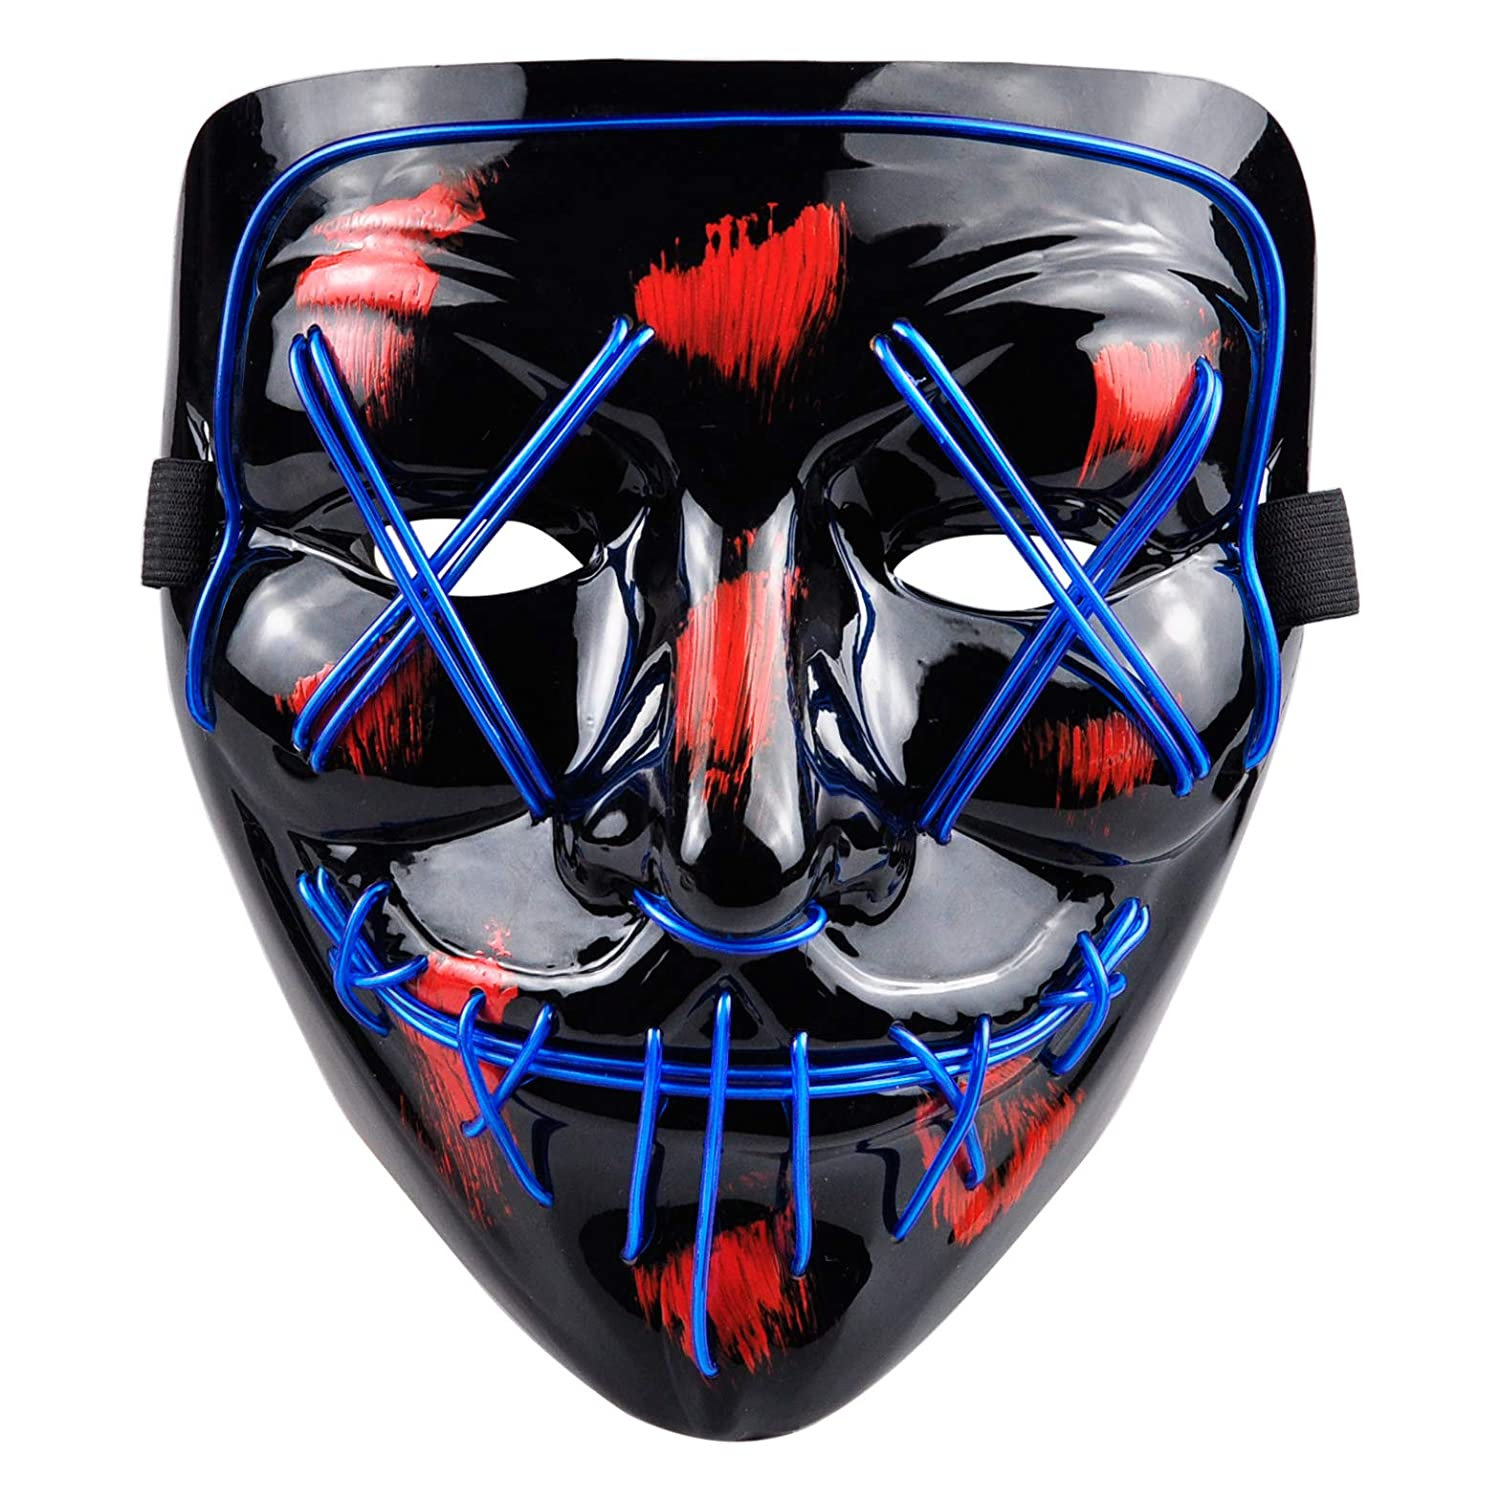 PINFOX Light Up Led Mask Flashing El Wire Glow Scary Mask Rave Costumes for Party Halloween